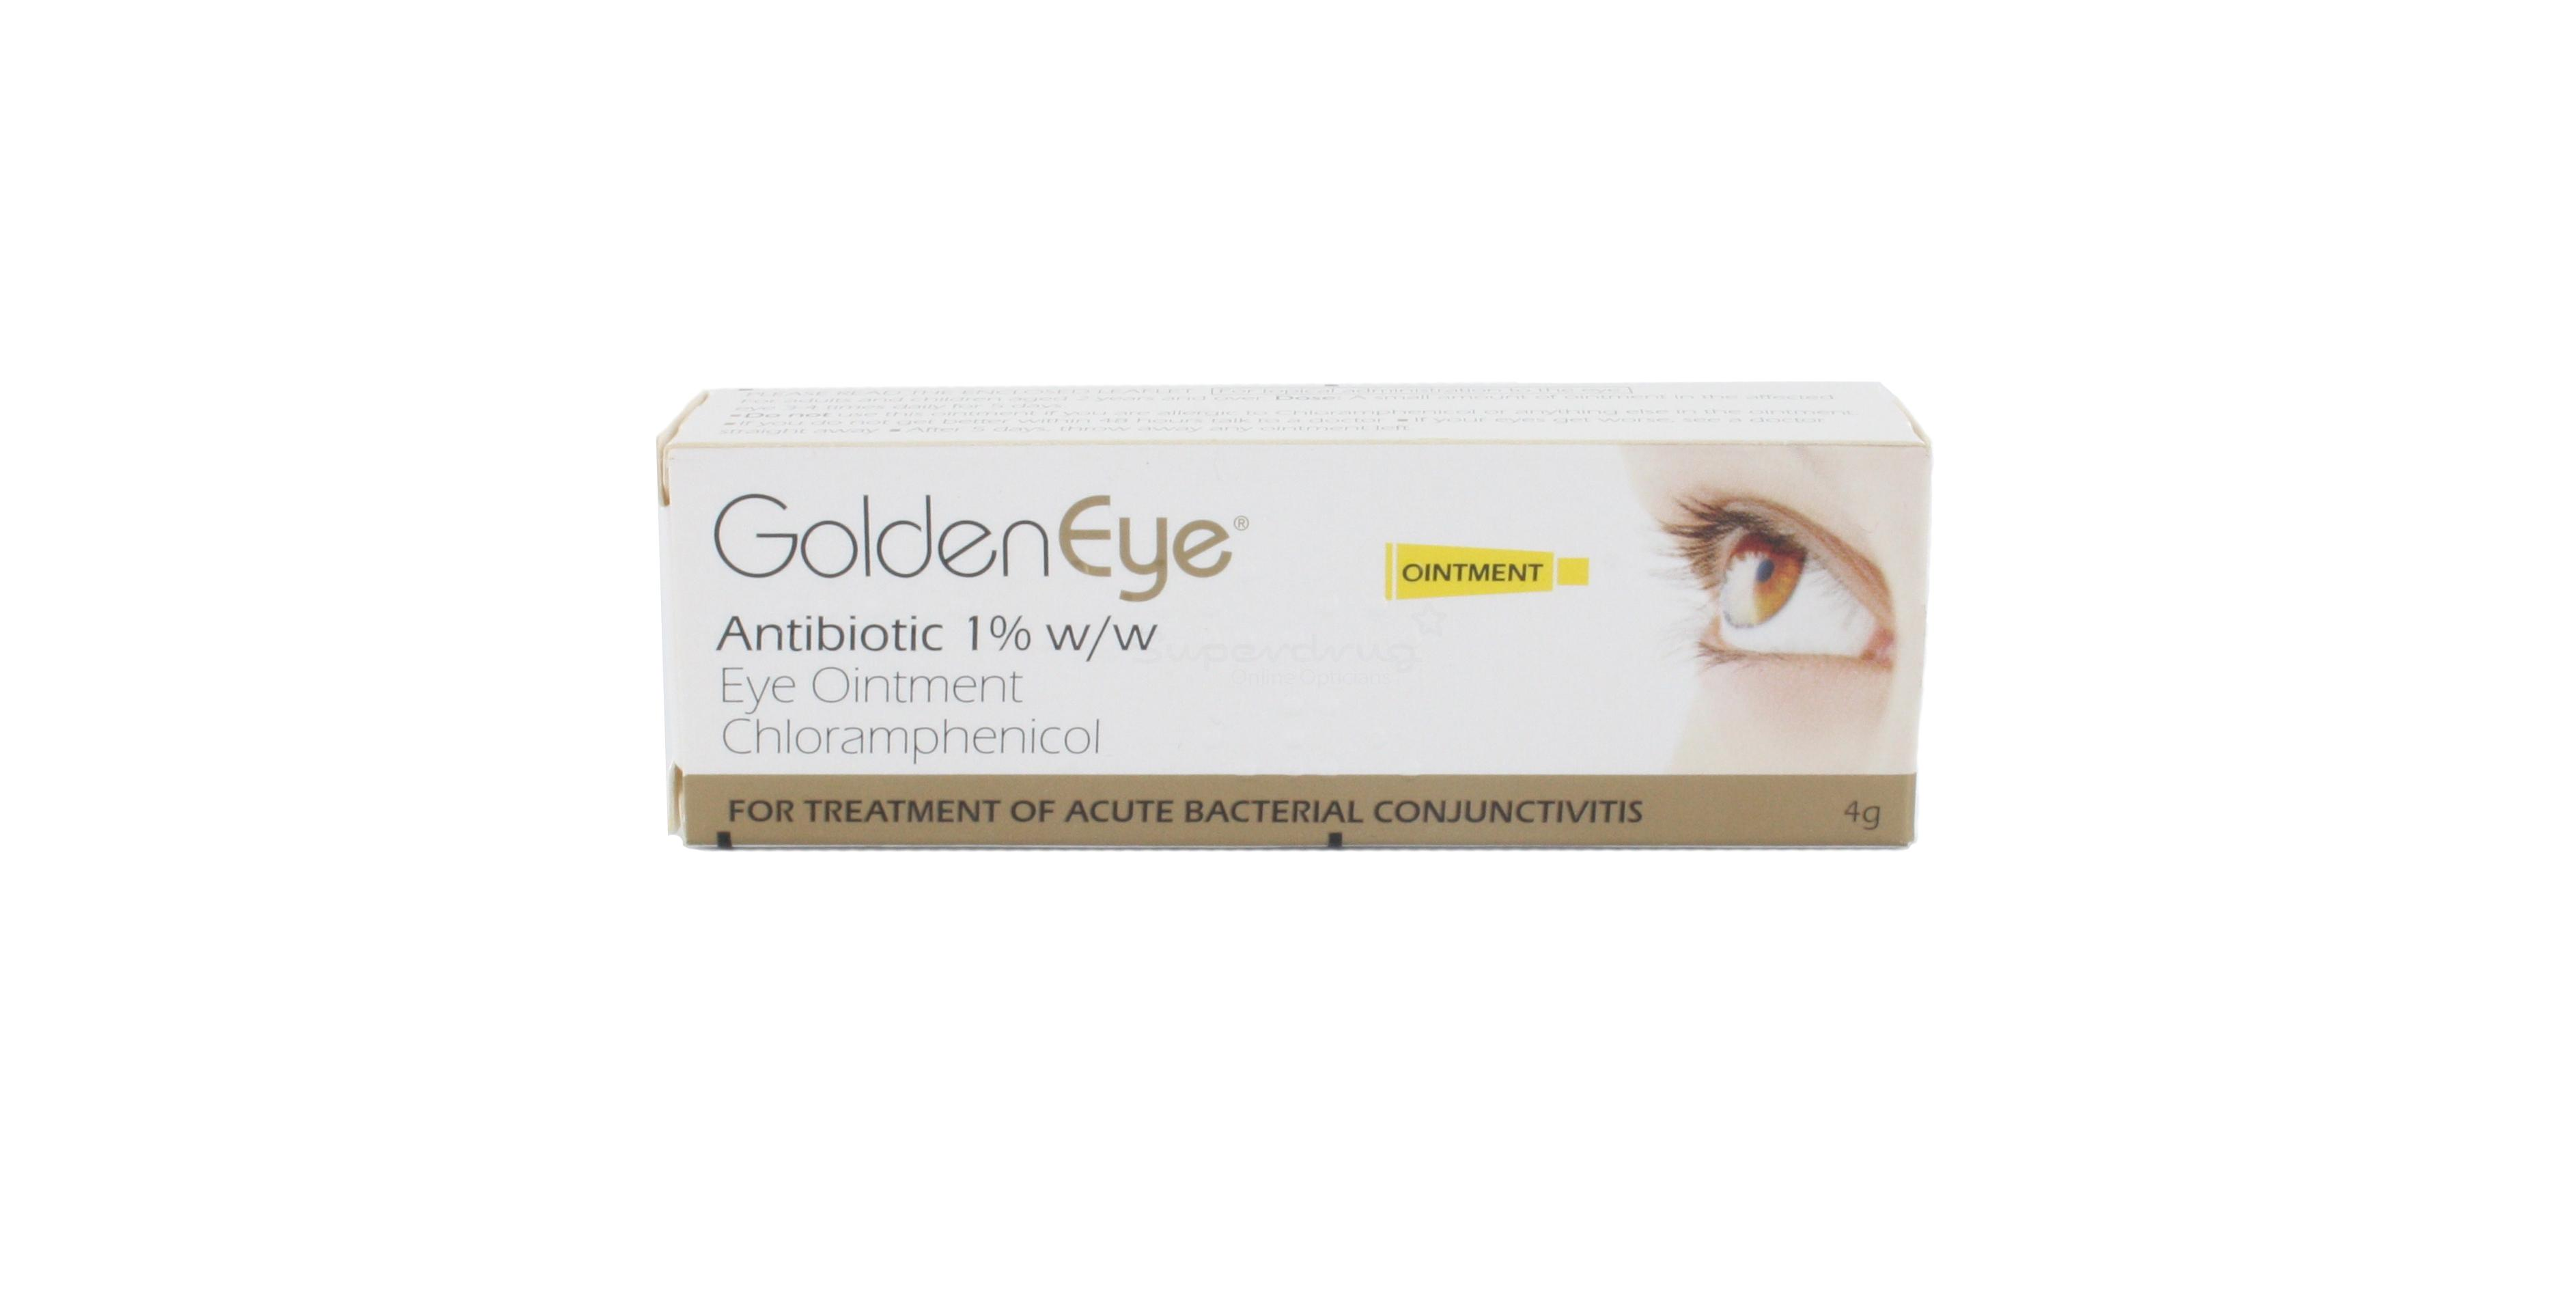 Eye Ointment Chloramphenicol Golden Eye Antibiotic Eye Ointment Chloramphenicol , Optical accessories